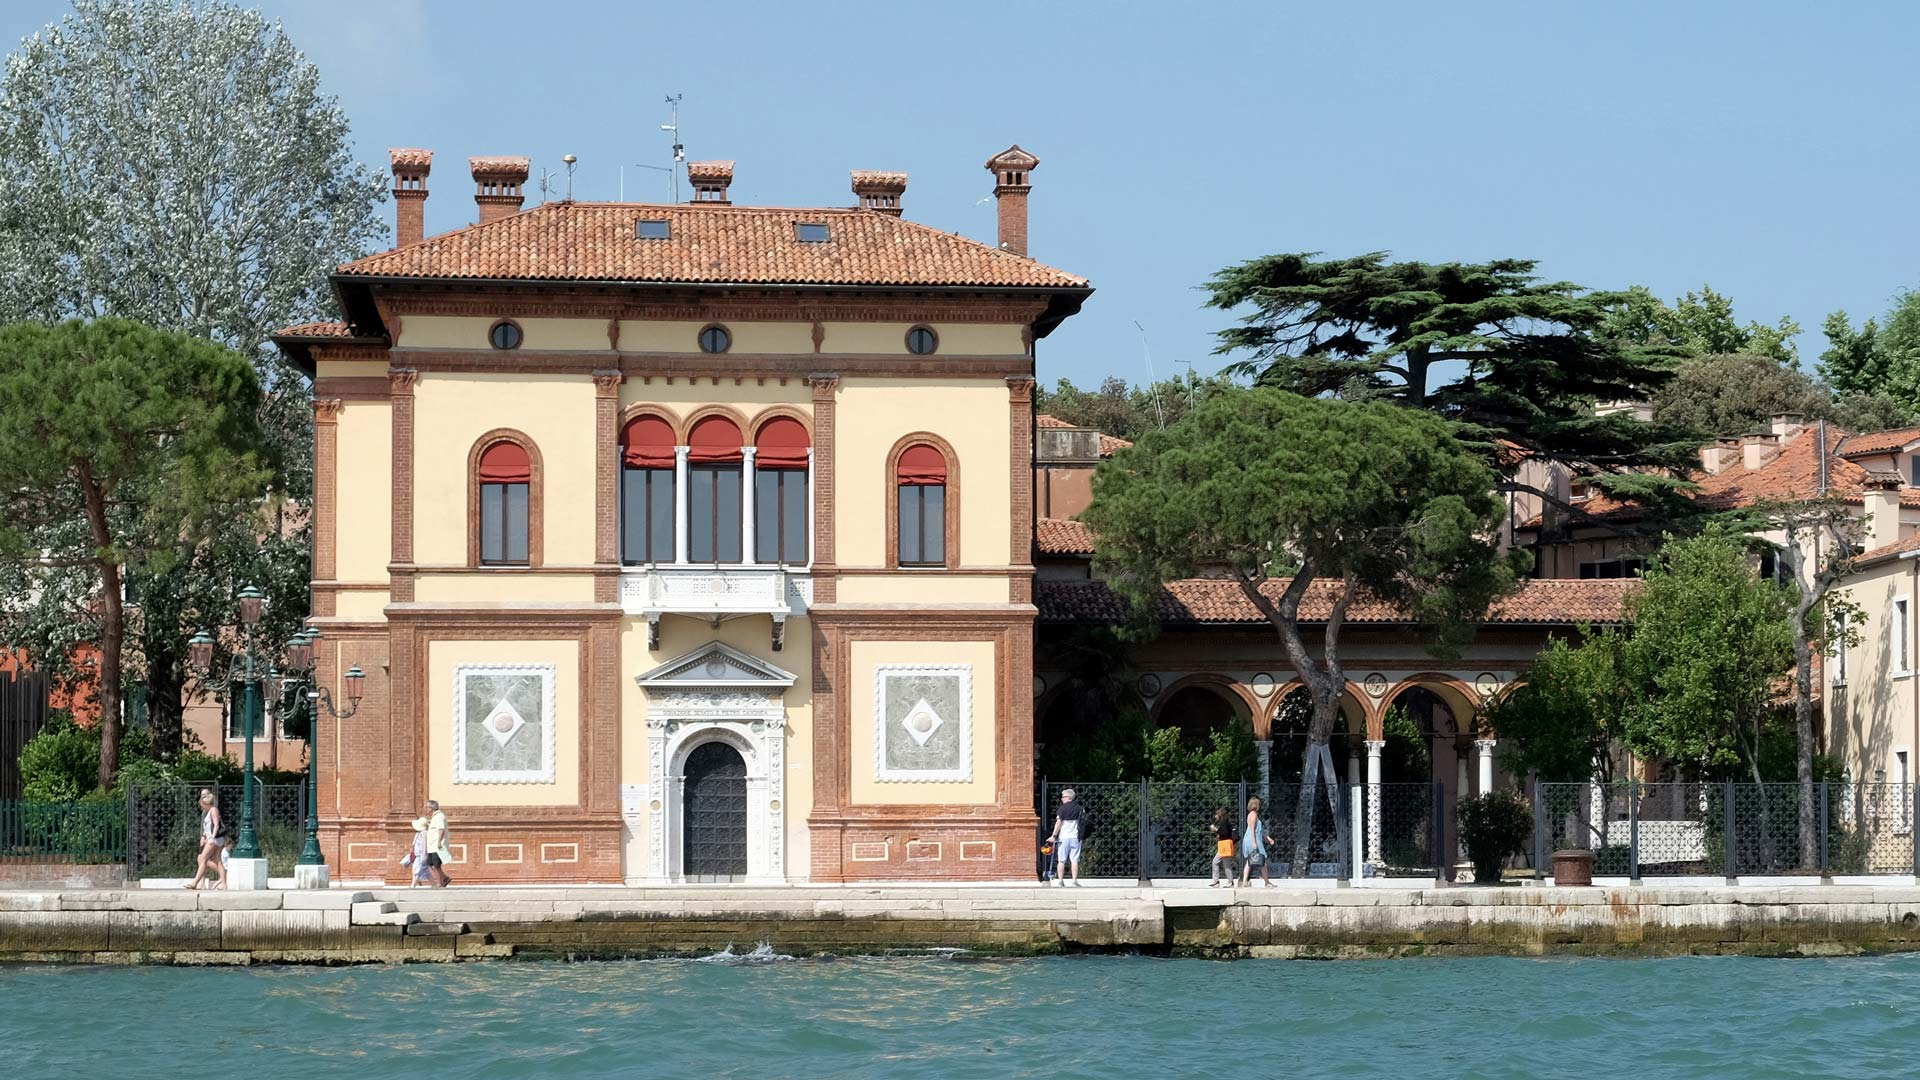 front façade of the Palazzina Canonica located on the Riva dei Sette Martiri